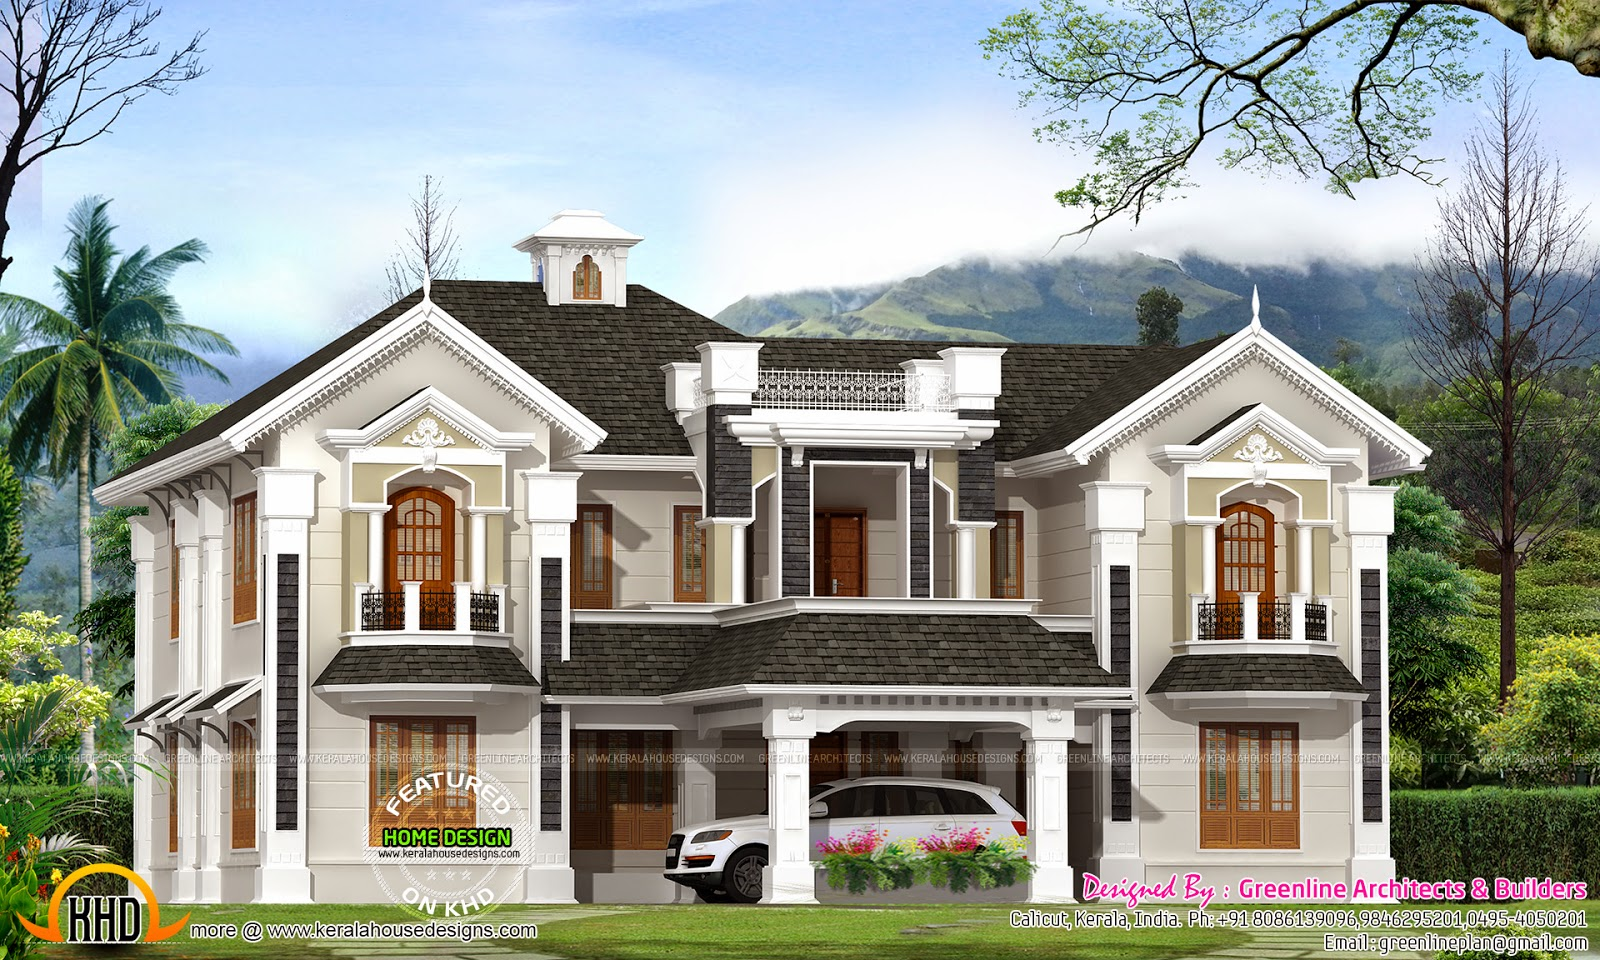 Colonial style house in kerala kerala home design and for Different exterior house styles